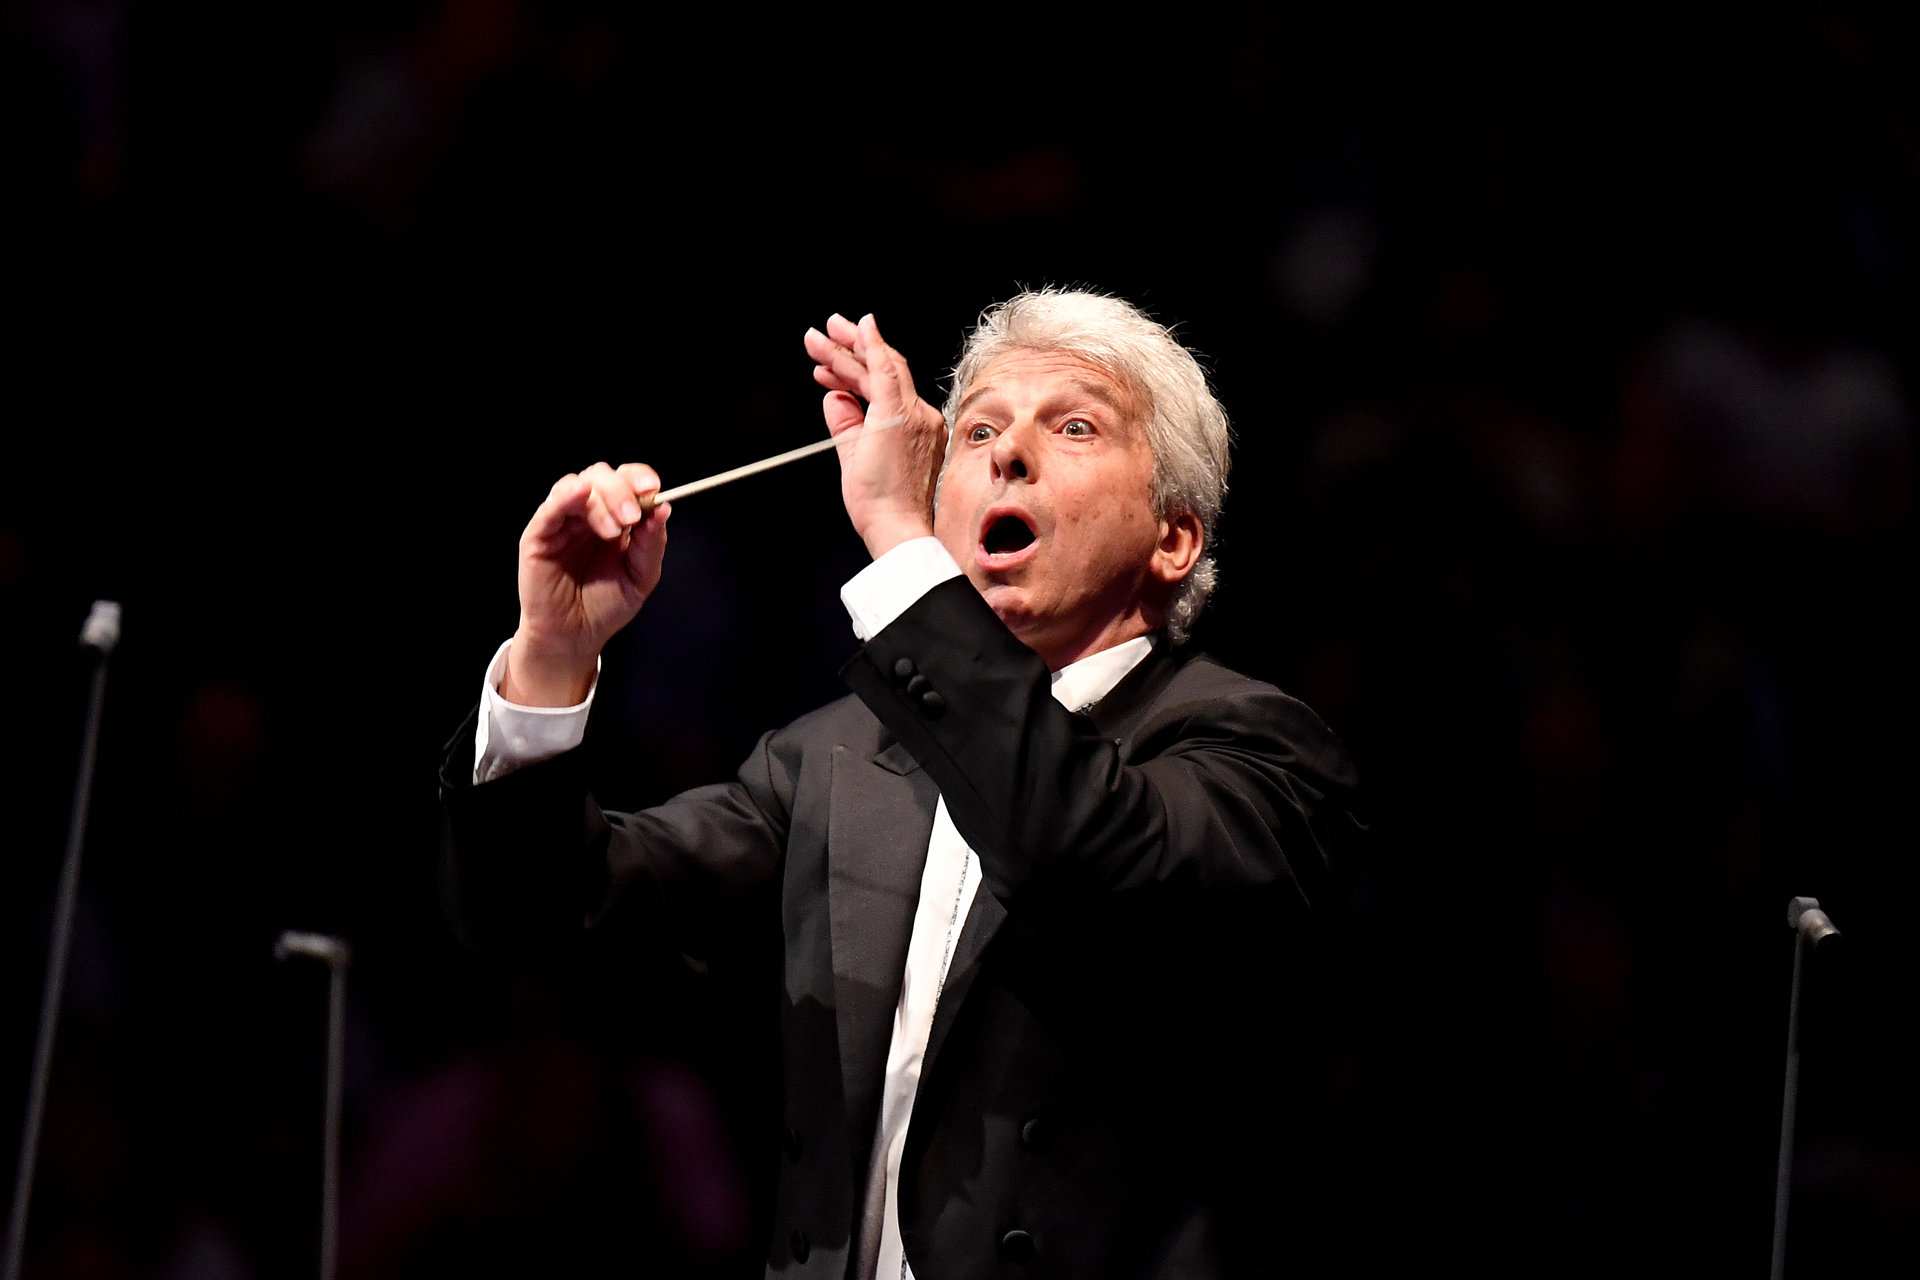 Peter Oundjian at the Proms